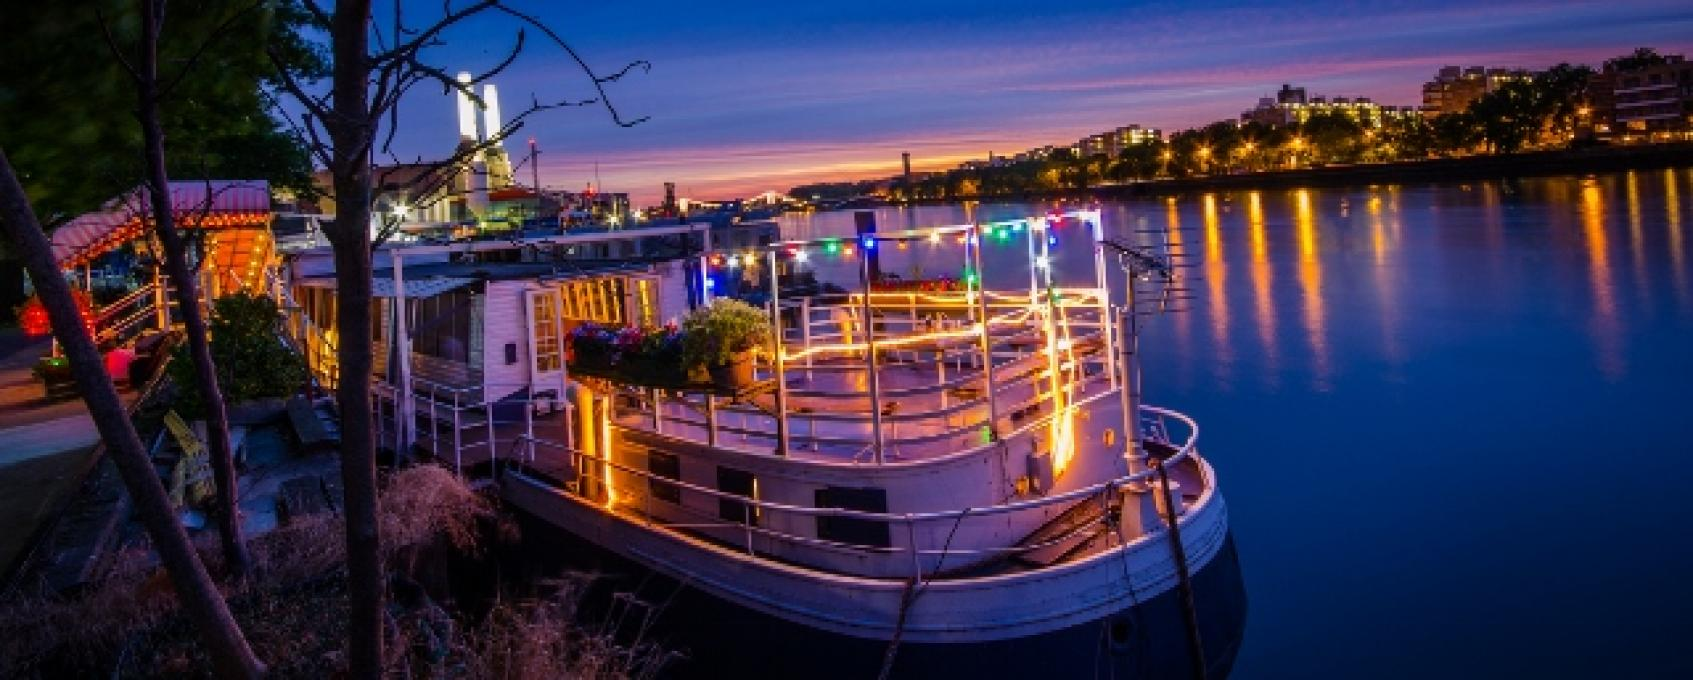 Moored on the Thames, this converted 1930s Dutch grain barge is a fun space for a Christmas party.